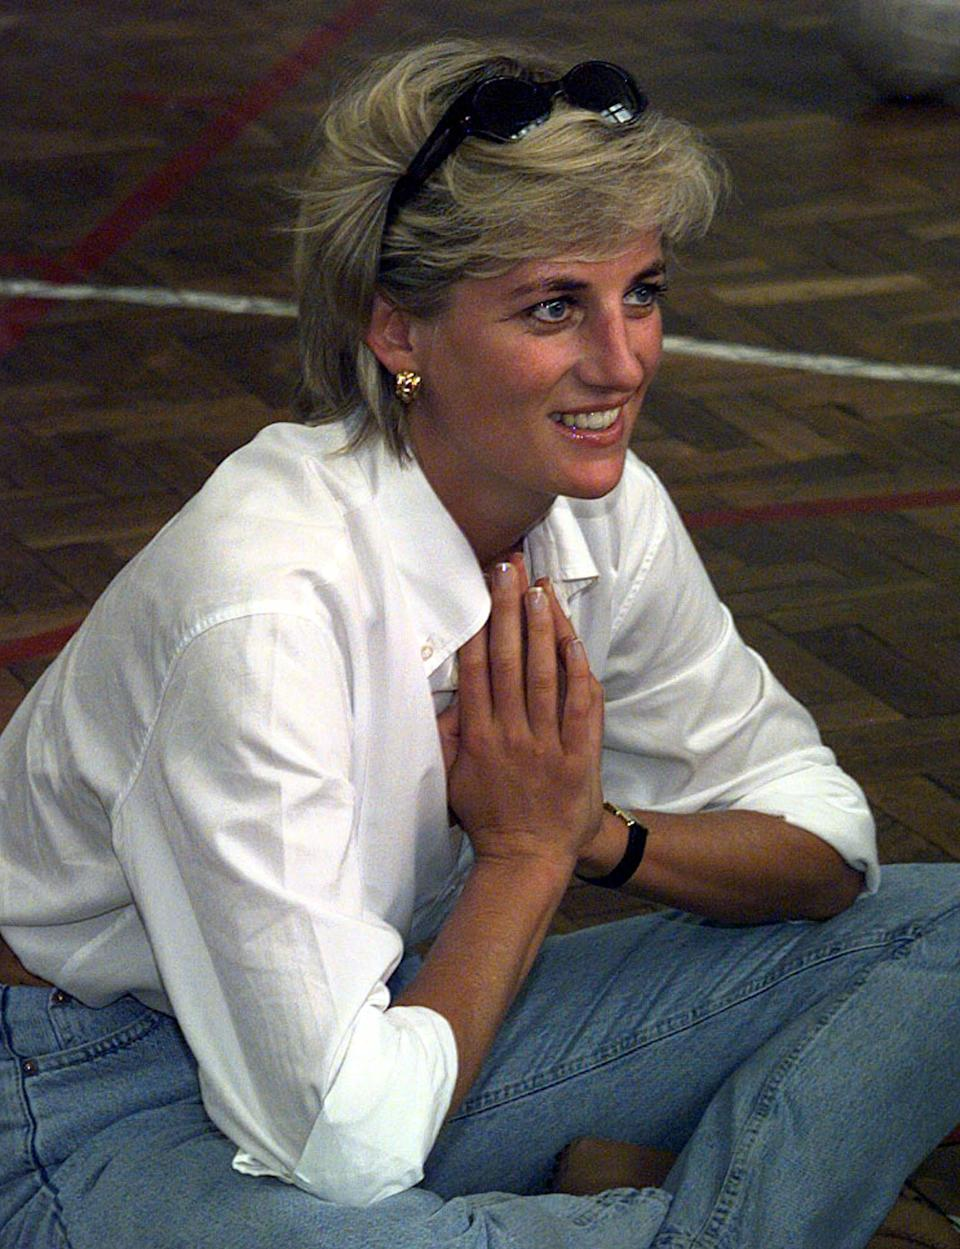 FILE PHOTO 9AUG97 - Diana, Princess of Wales sits cross-legged on the floor as she chats with members of a Zenica volleyball team who have suffered injuries from mines August 9, during Diana's visit to Bosnia and Herzegovina. Diana was seriously injured in a car crash in Paris early Sunday, French police said. Harrods heir Dodi Al Fayed was killed in the accident, which occurred shortly after midnight, police added.  FRANCE DIANA